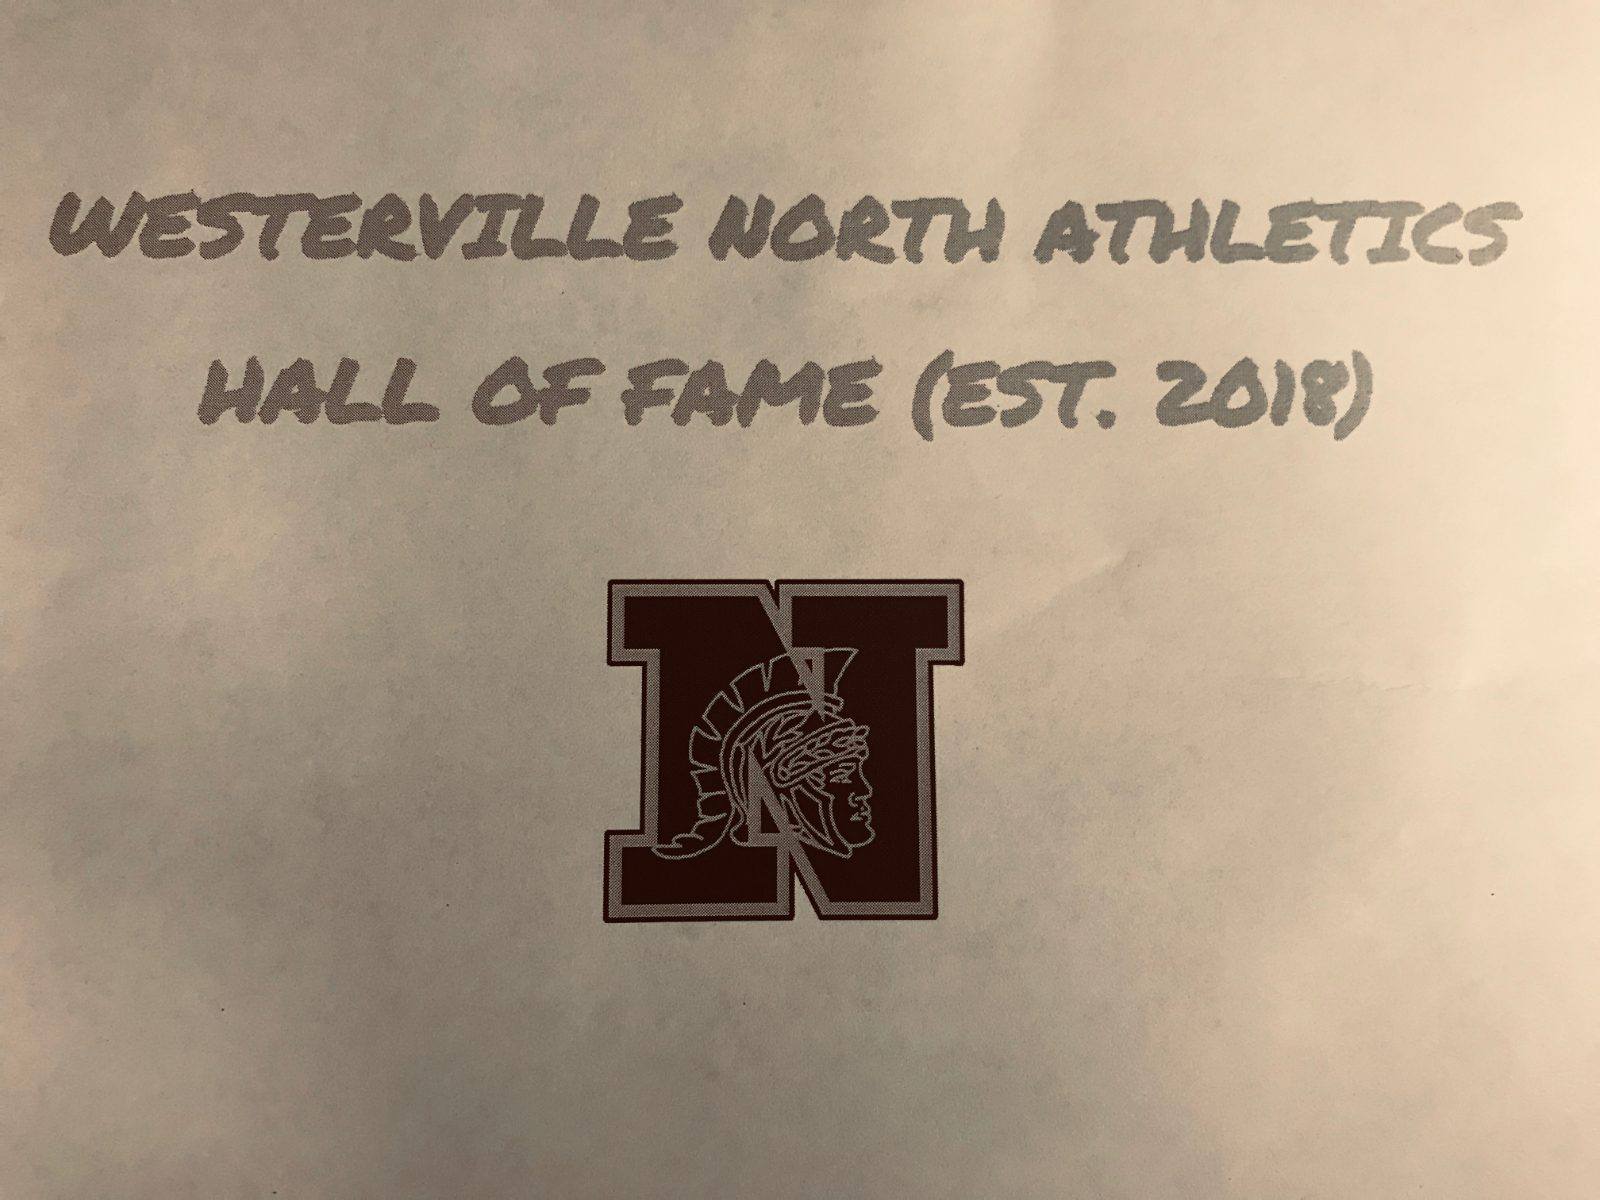 Athletics Hall of Fame Class of 2020